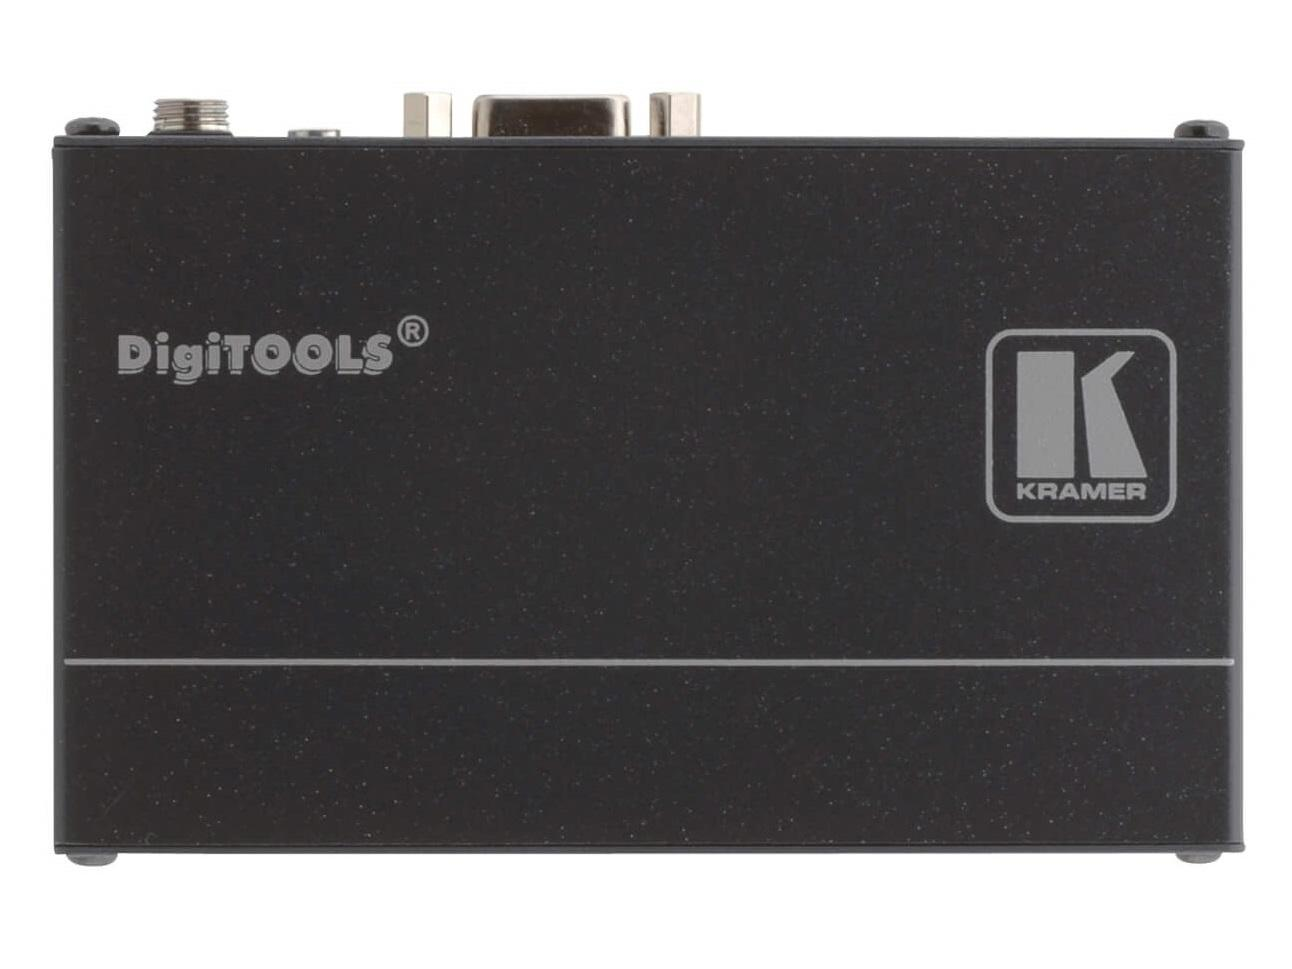 TP-580R 4K/60 4x2x0 HDMI HDCP 2.2 Receiver with RS-232/IR over Long-Reach HDBaseT by Kramer